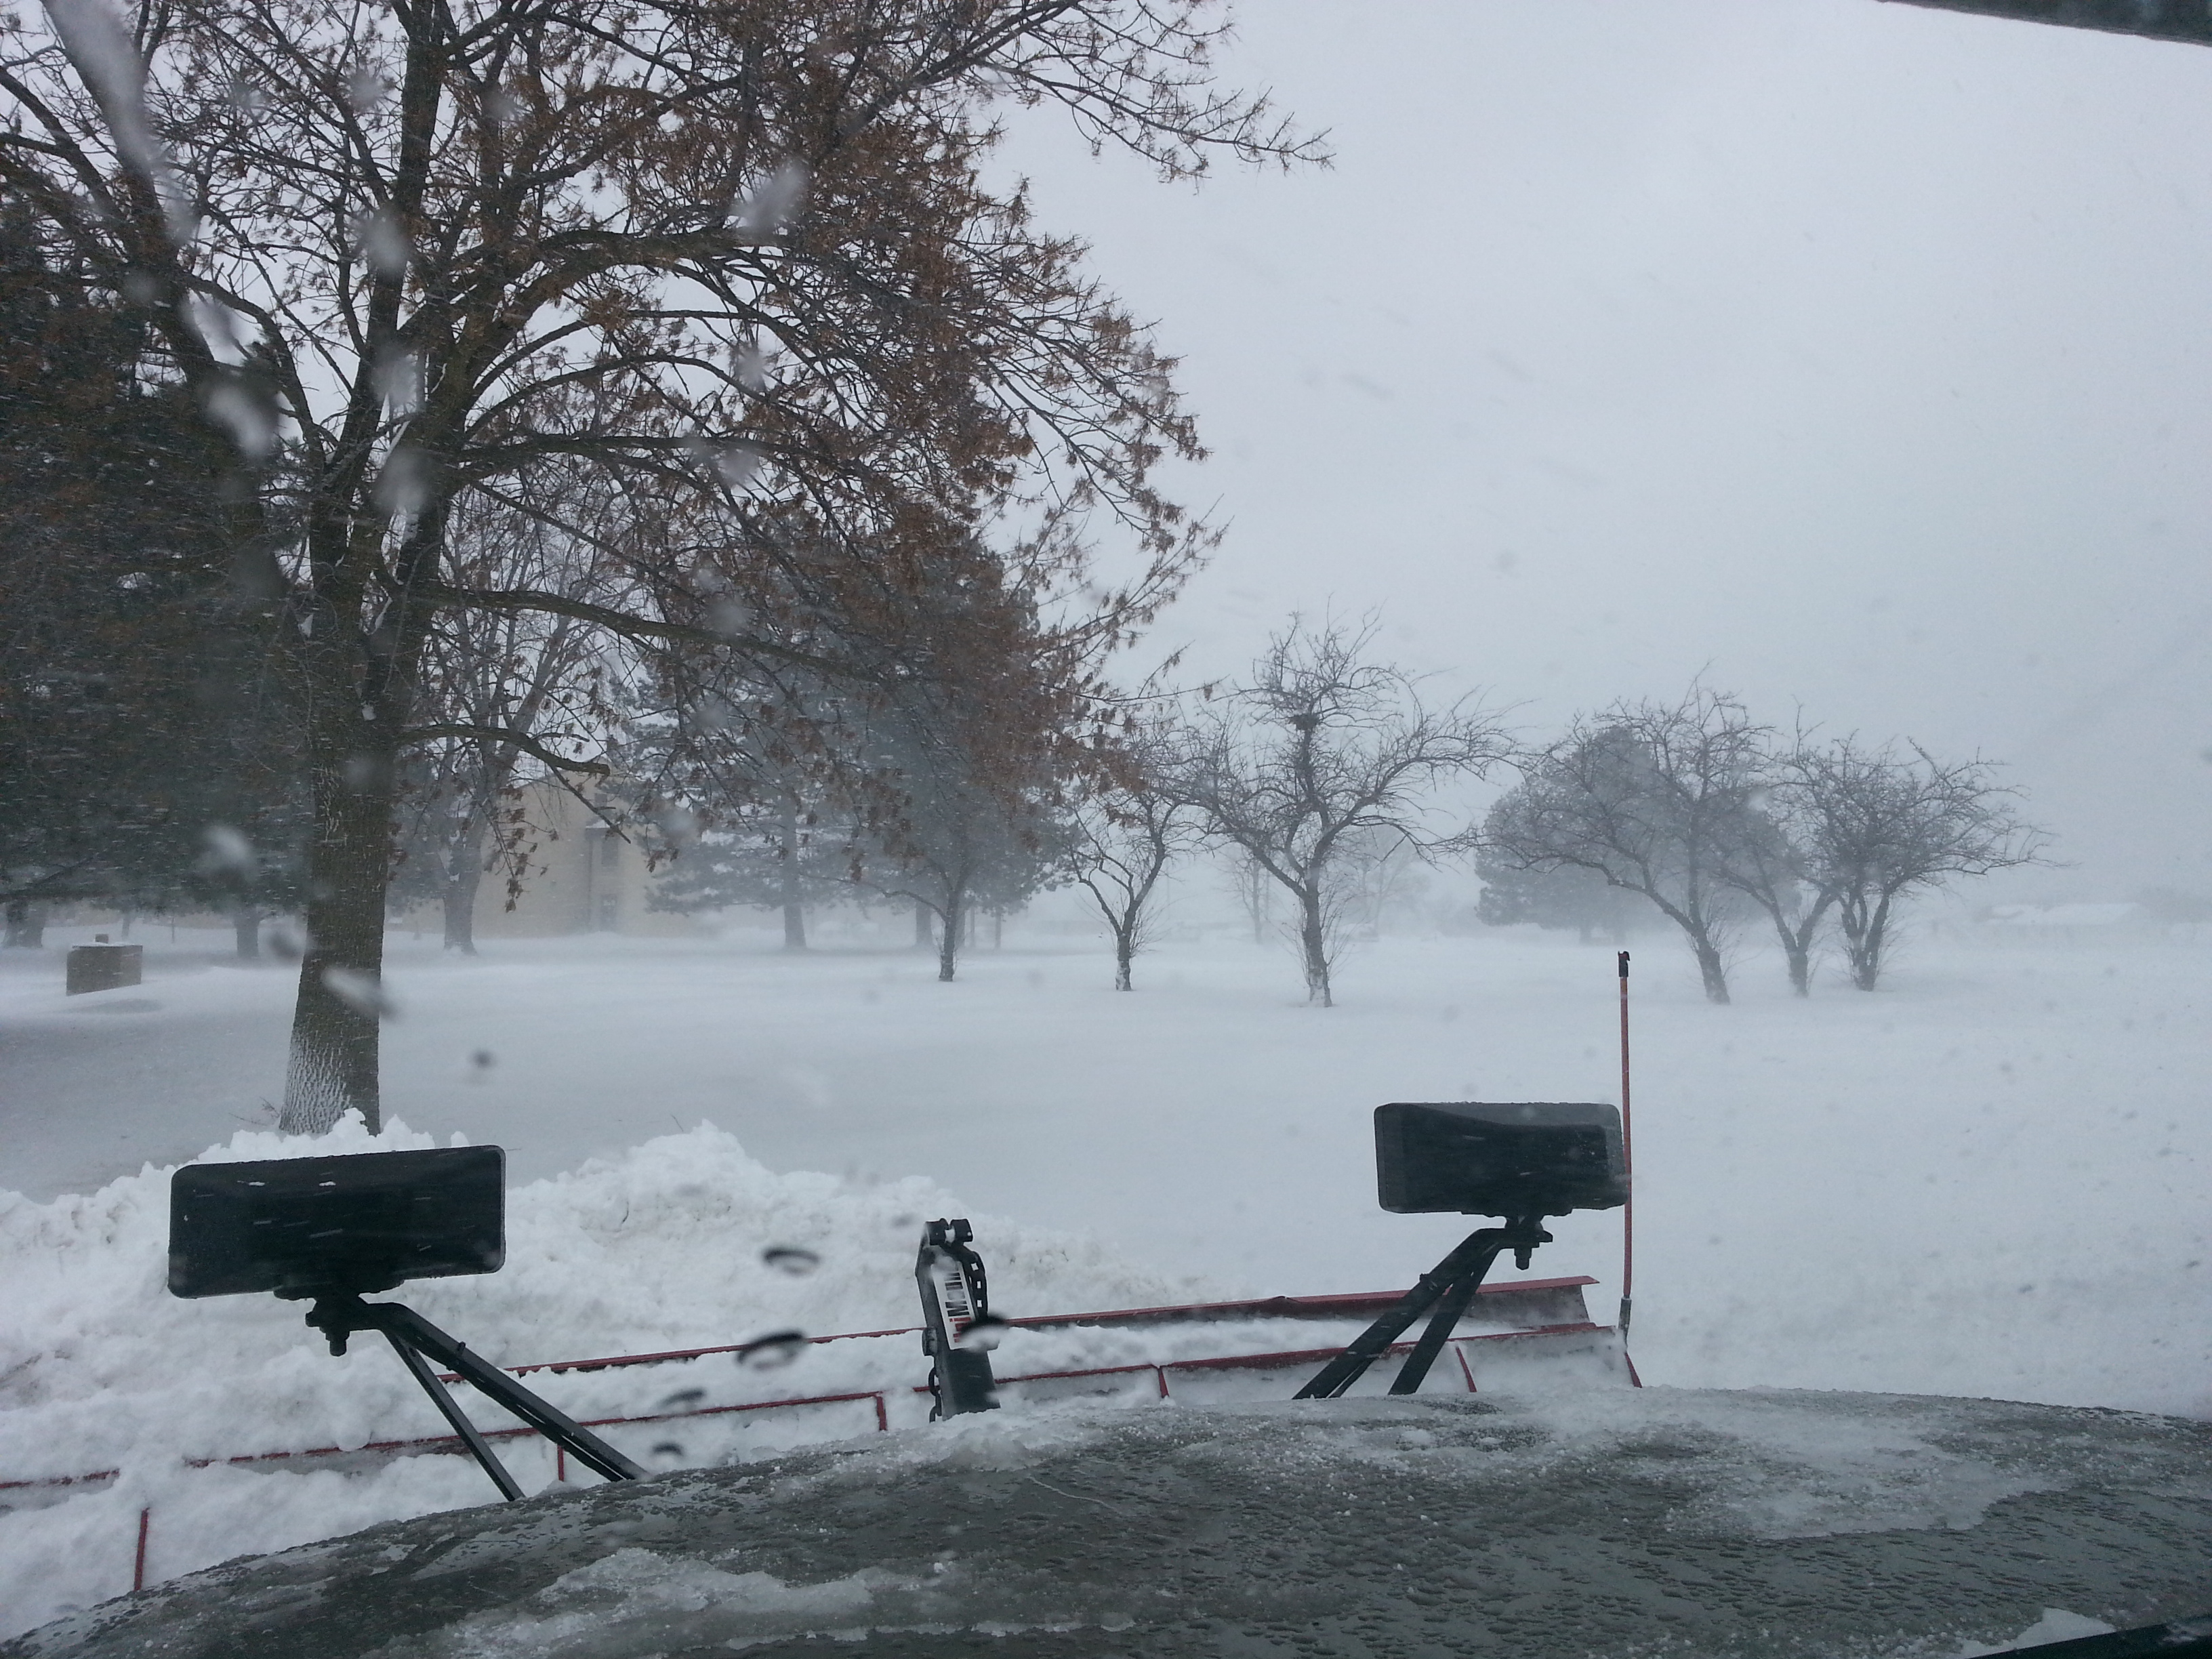 DoD - Fort Sheridan Snow Removal